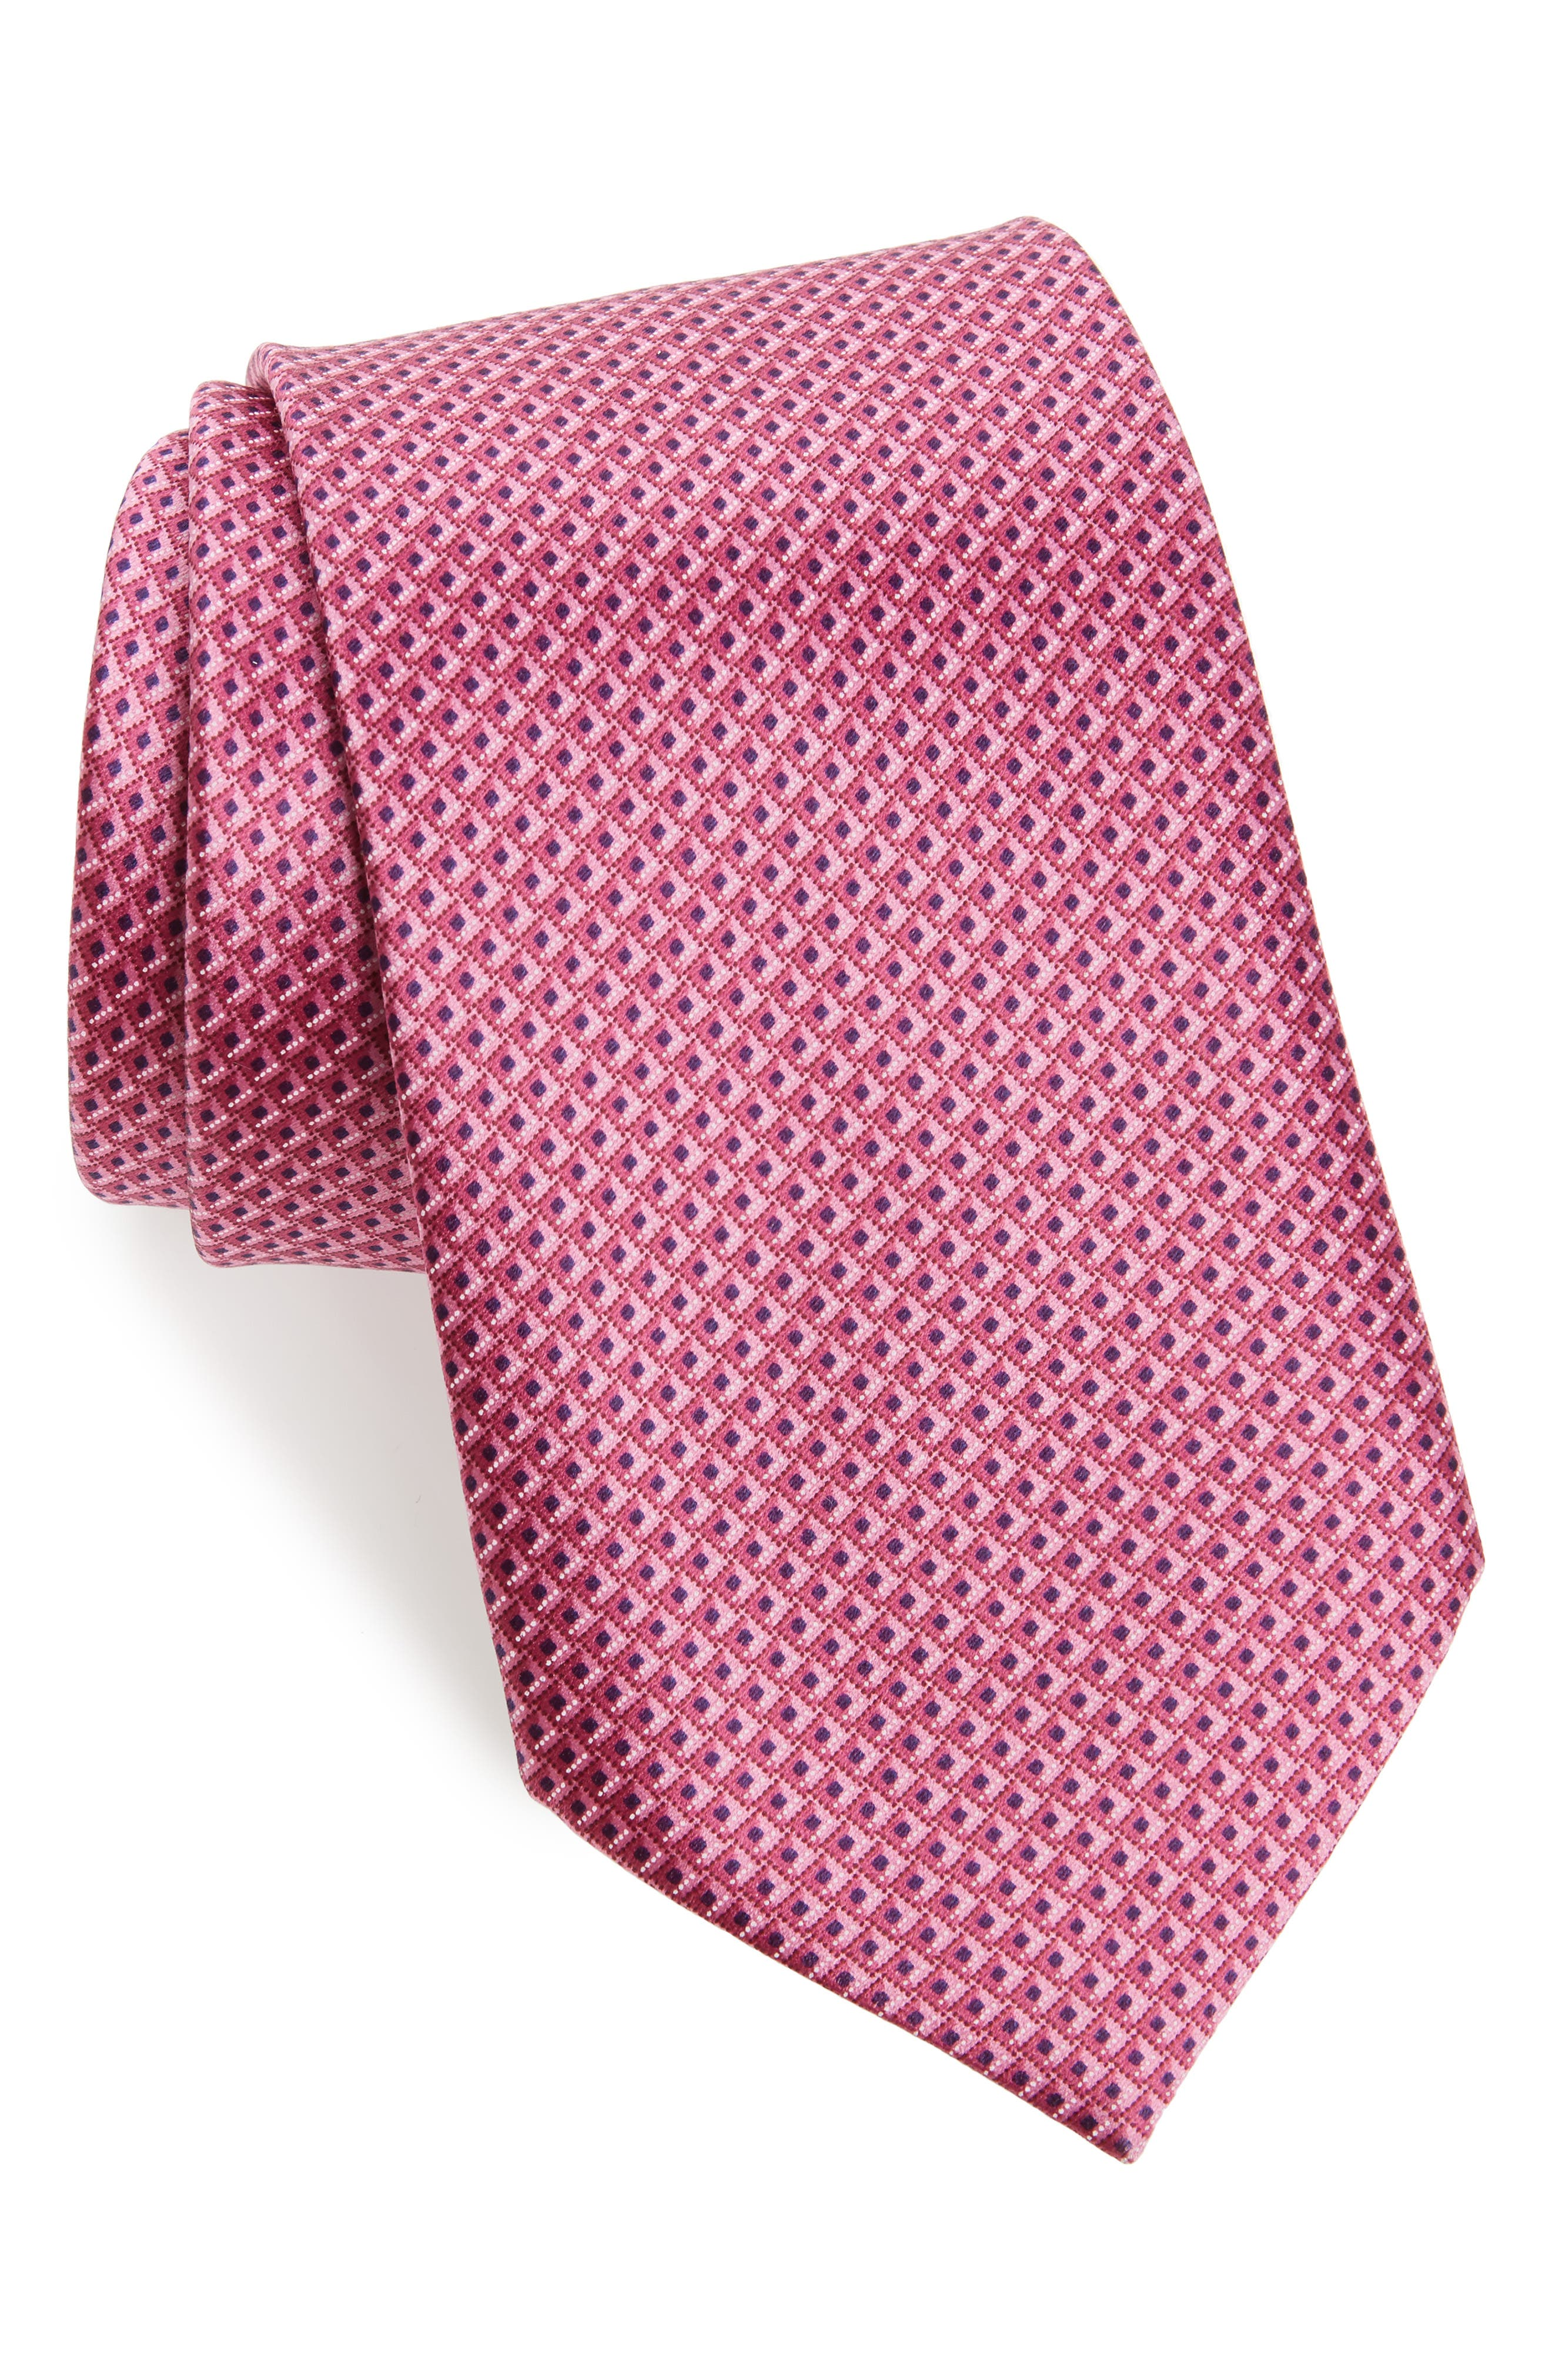 Solid Silk Tie,                             Main thumbnail 1, color,                             Pink